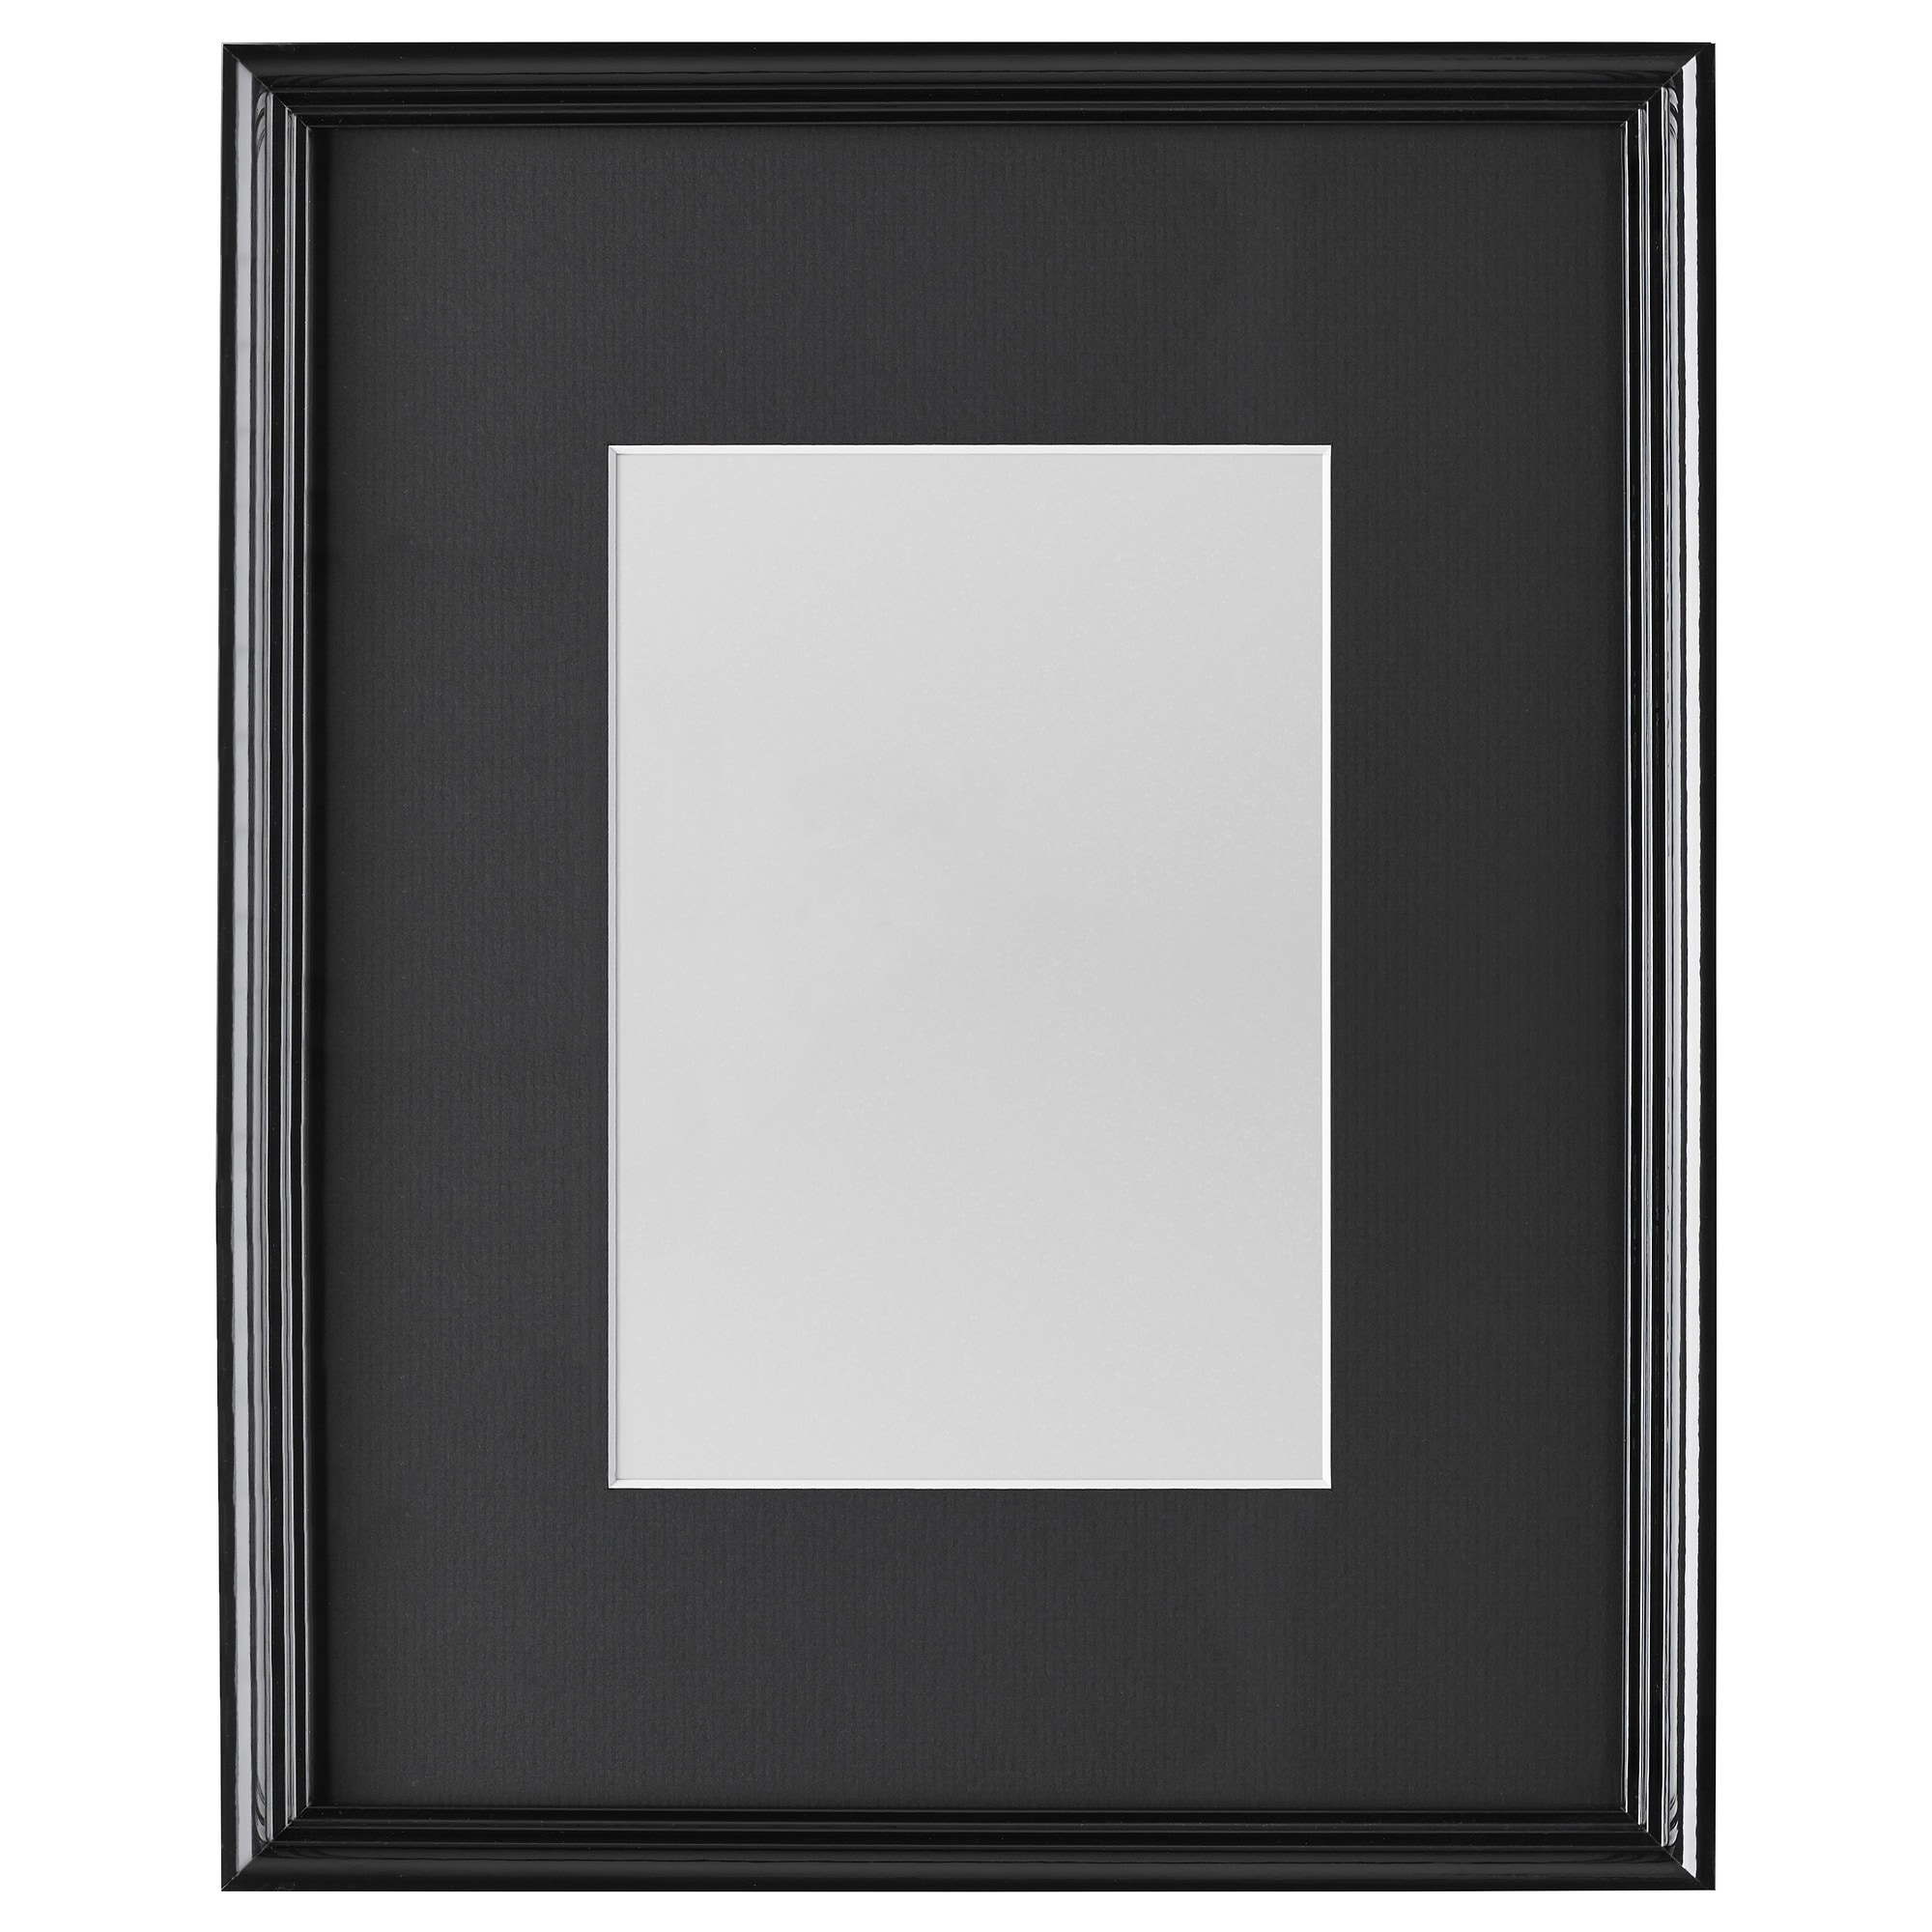 Picture frames imagui - Cadre photo grand format ikea ...